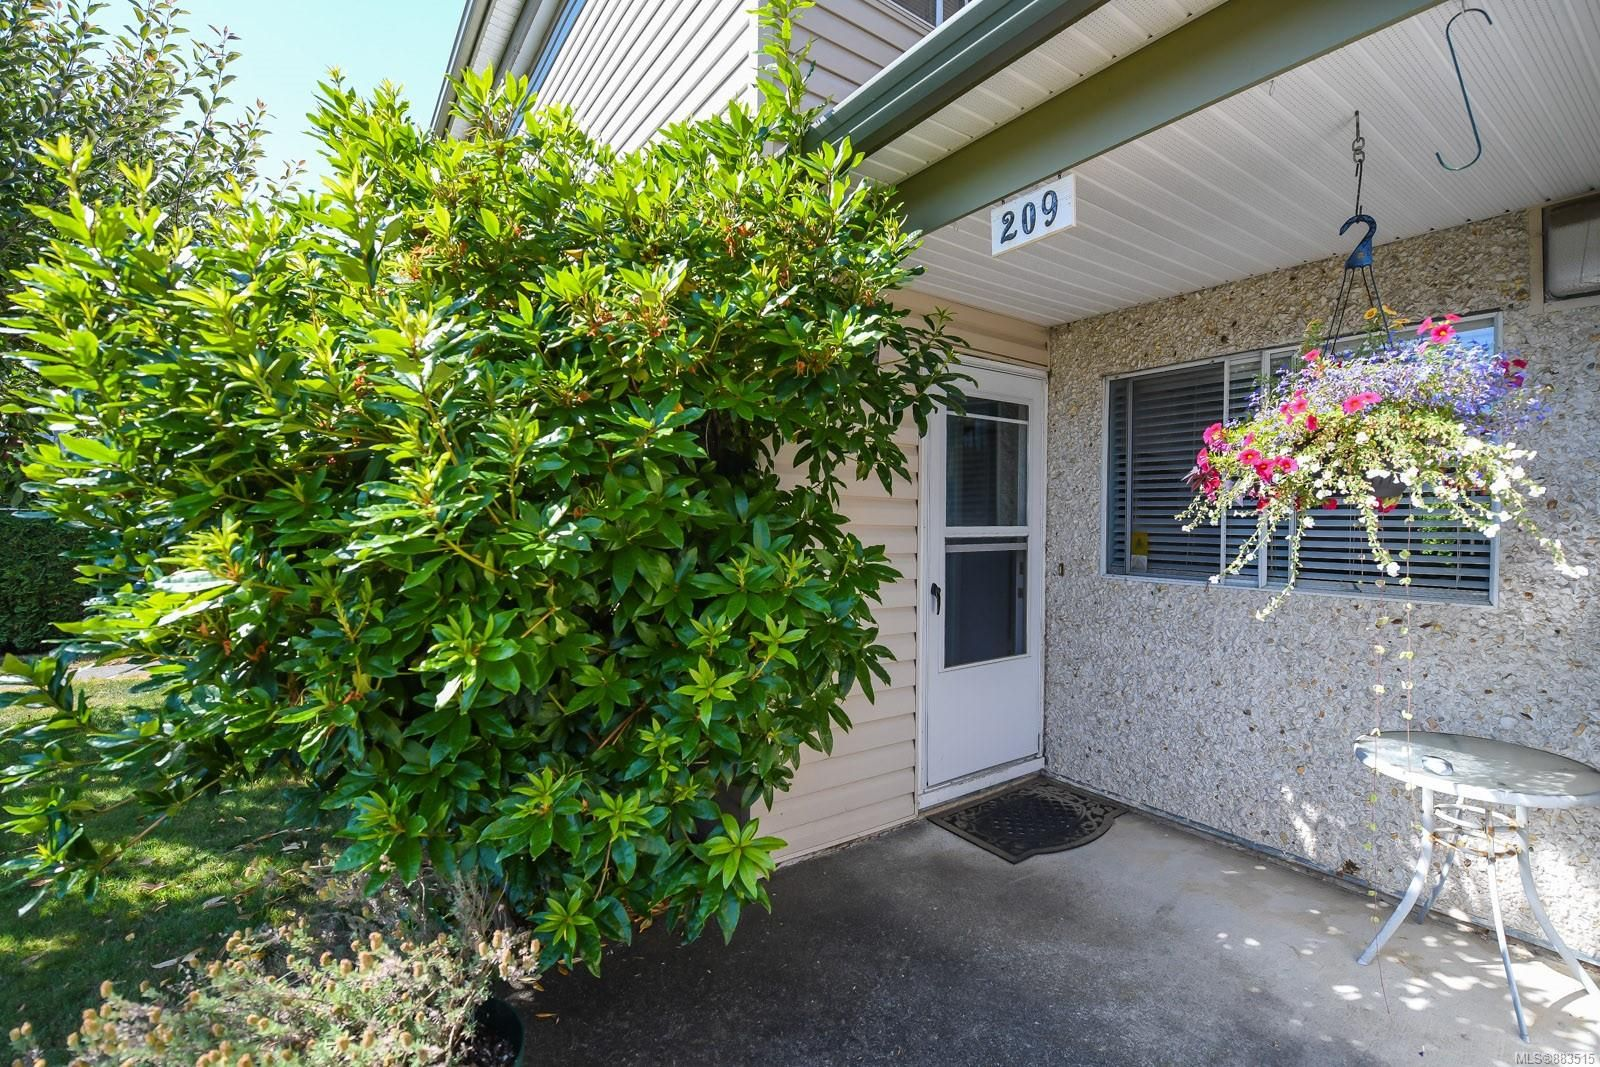 Main Photo: 209 1537 Noel Ave in : CV Comox (Town of) Row/Townhouse for sale (Comox Valley)  : MLS®# 883515